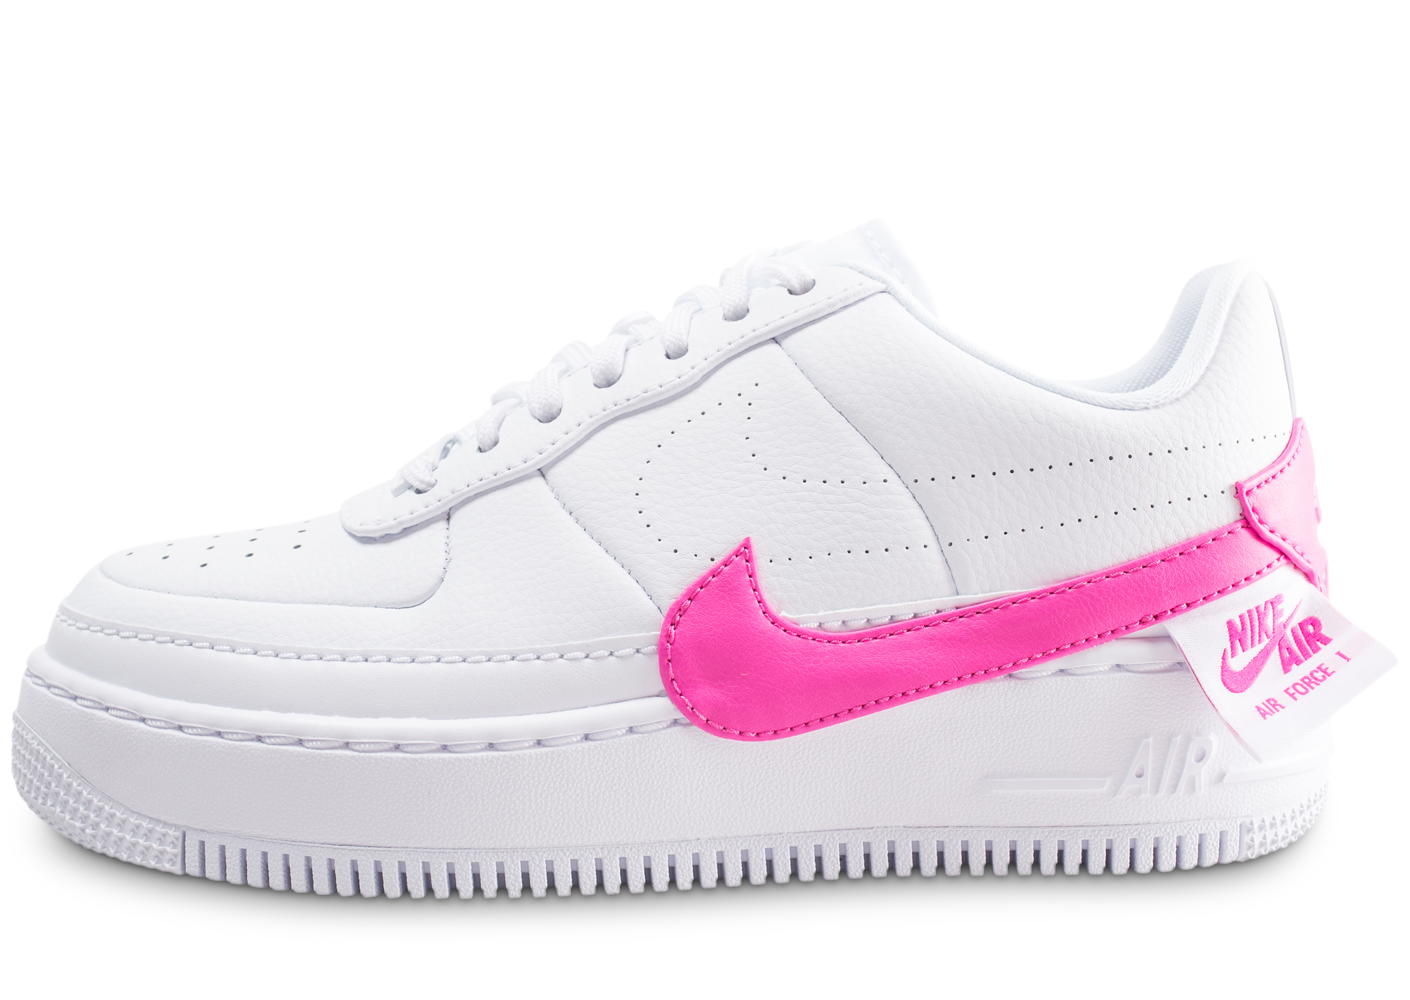 official photos bac7e 523bb Nike air force 1 jester xx blanche et fuchsia.